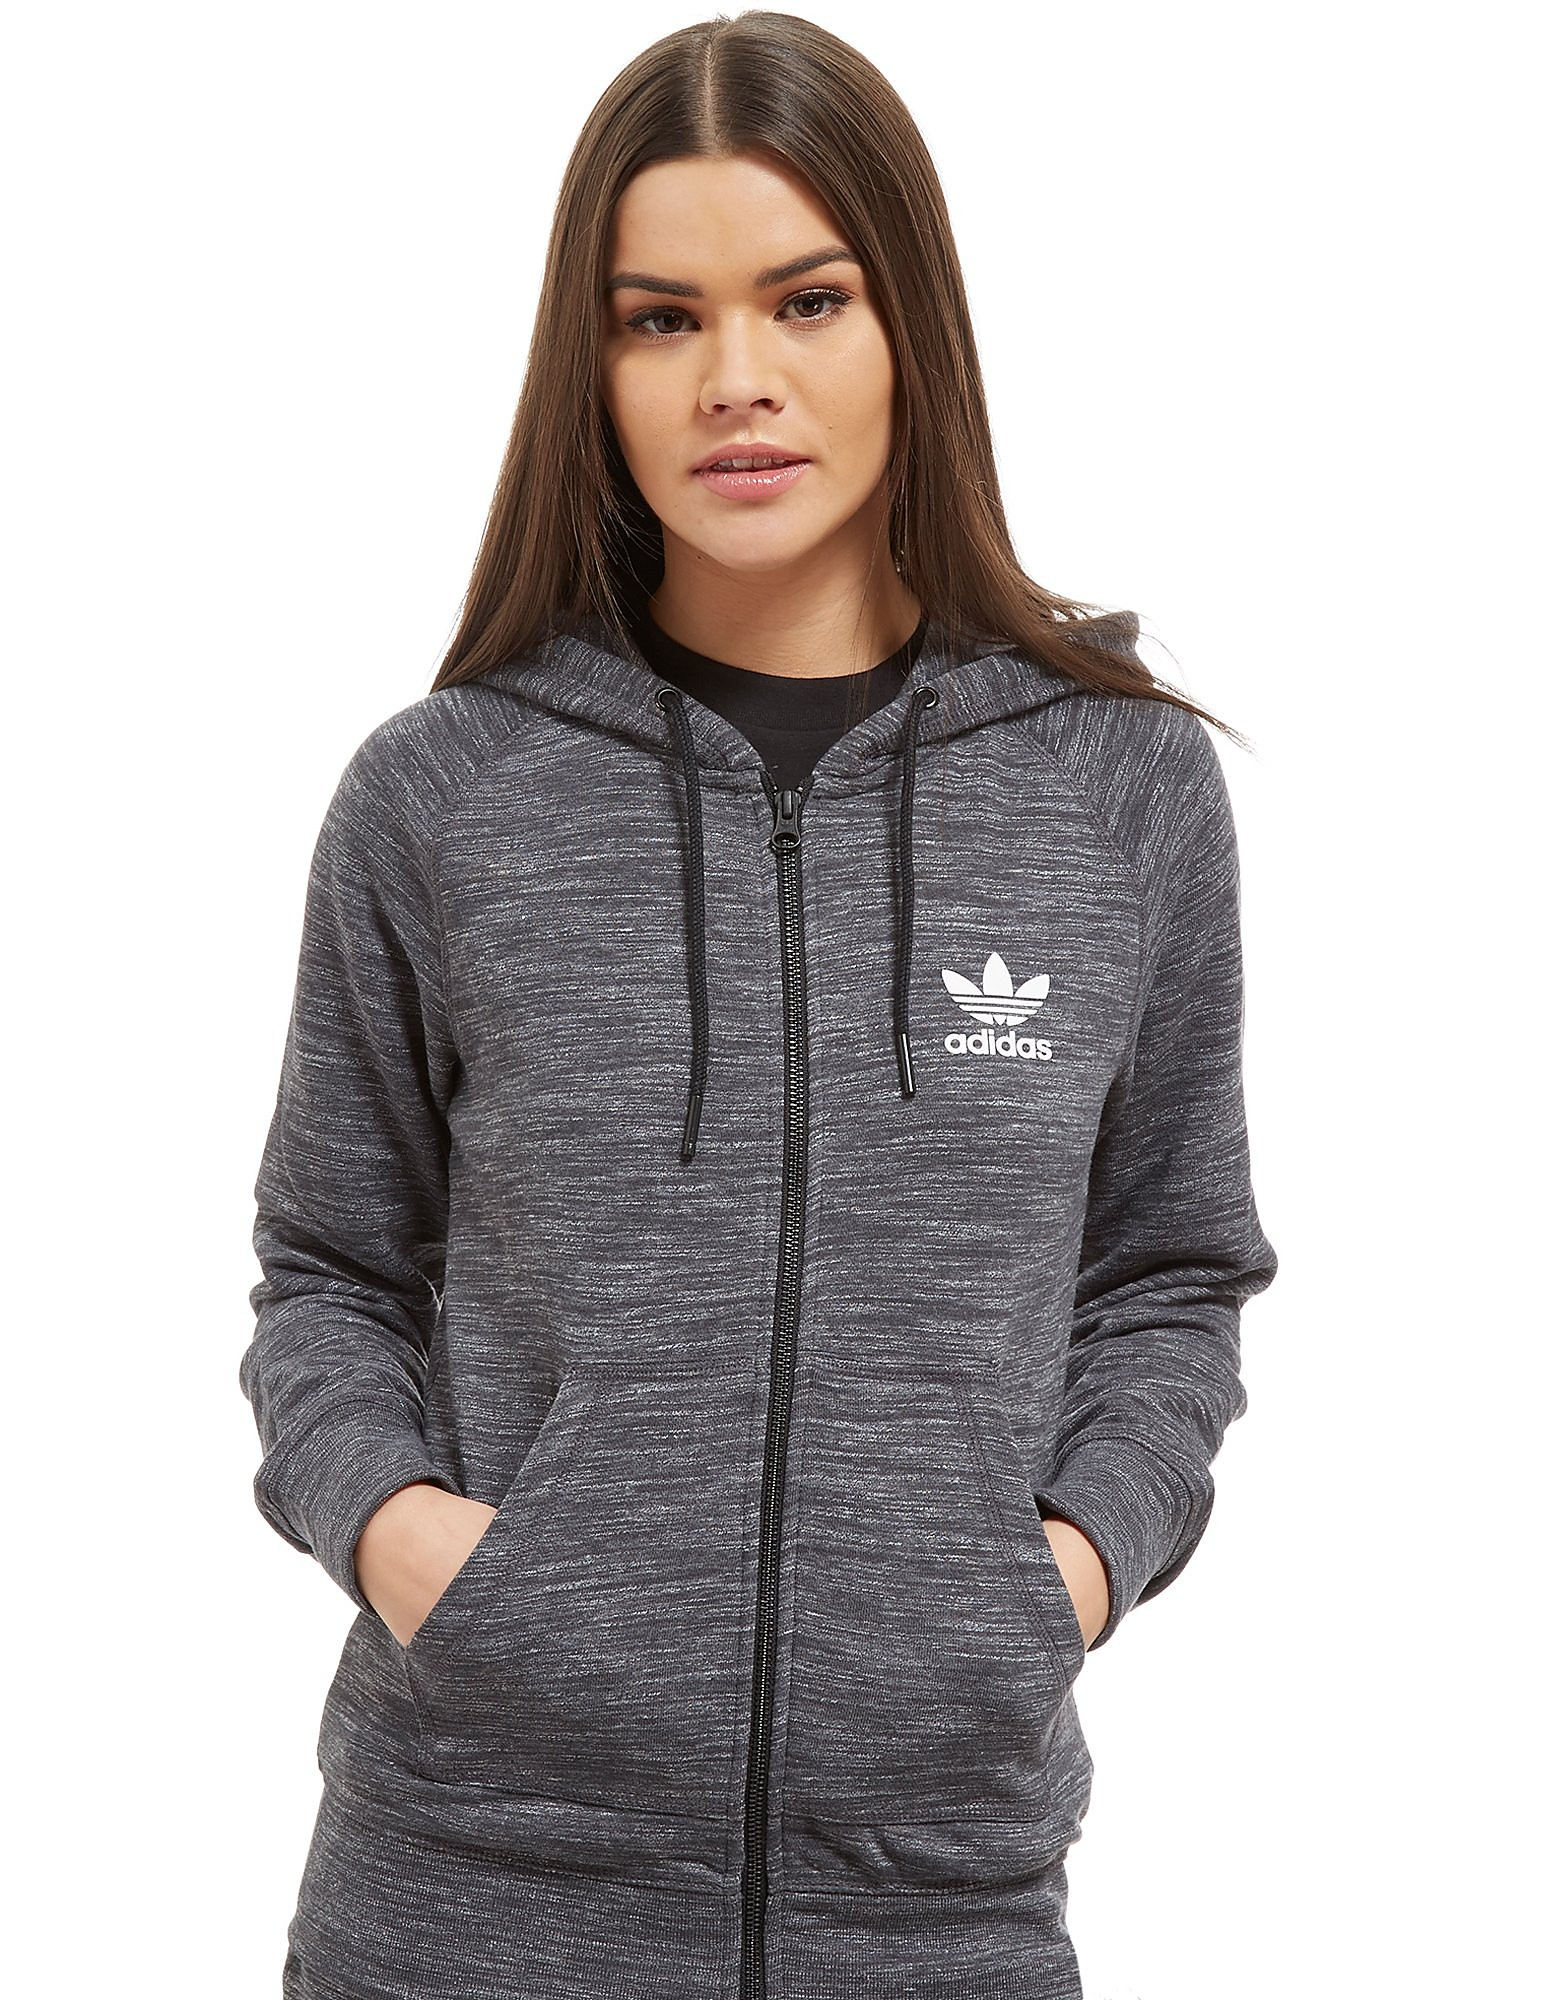 adidas Originals Premium Spacedye Full Zip Hoodie